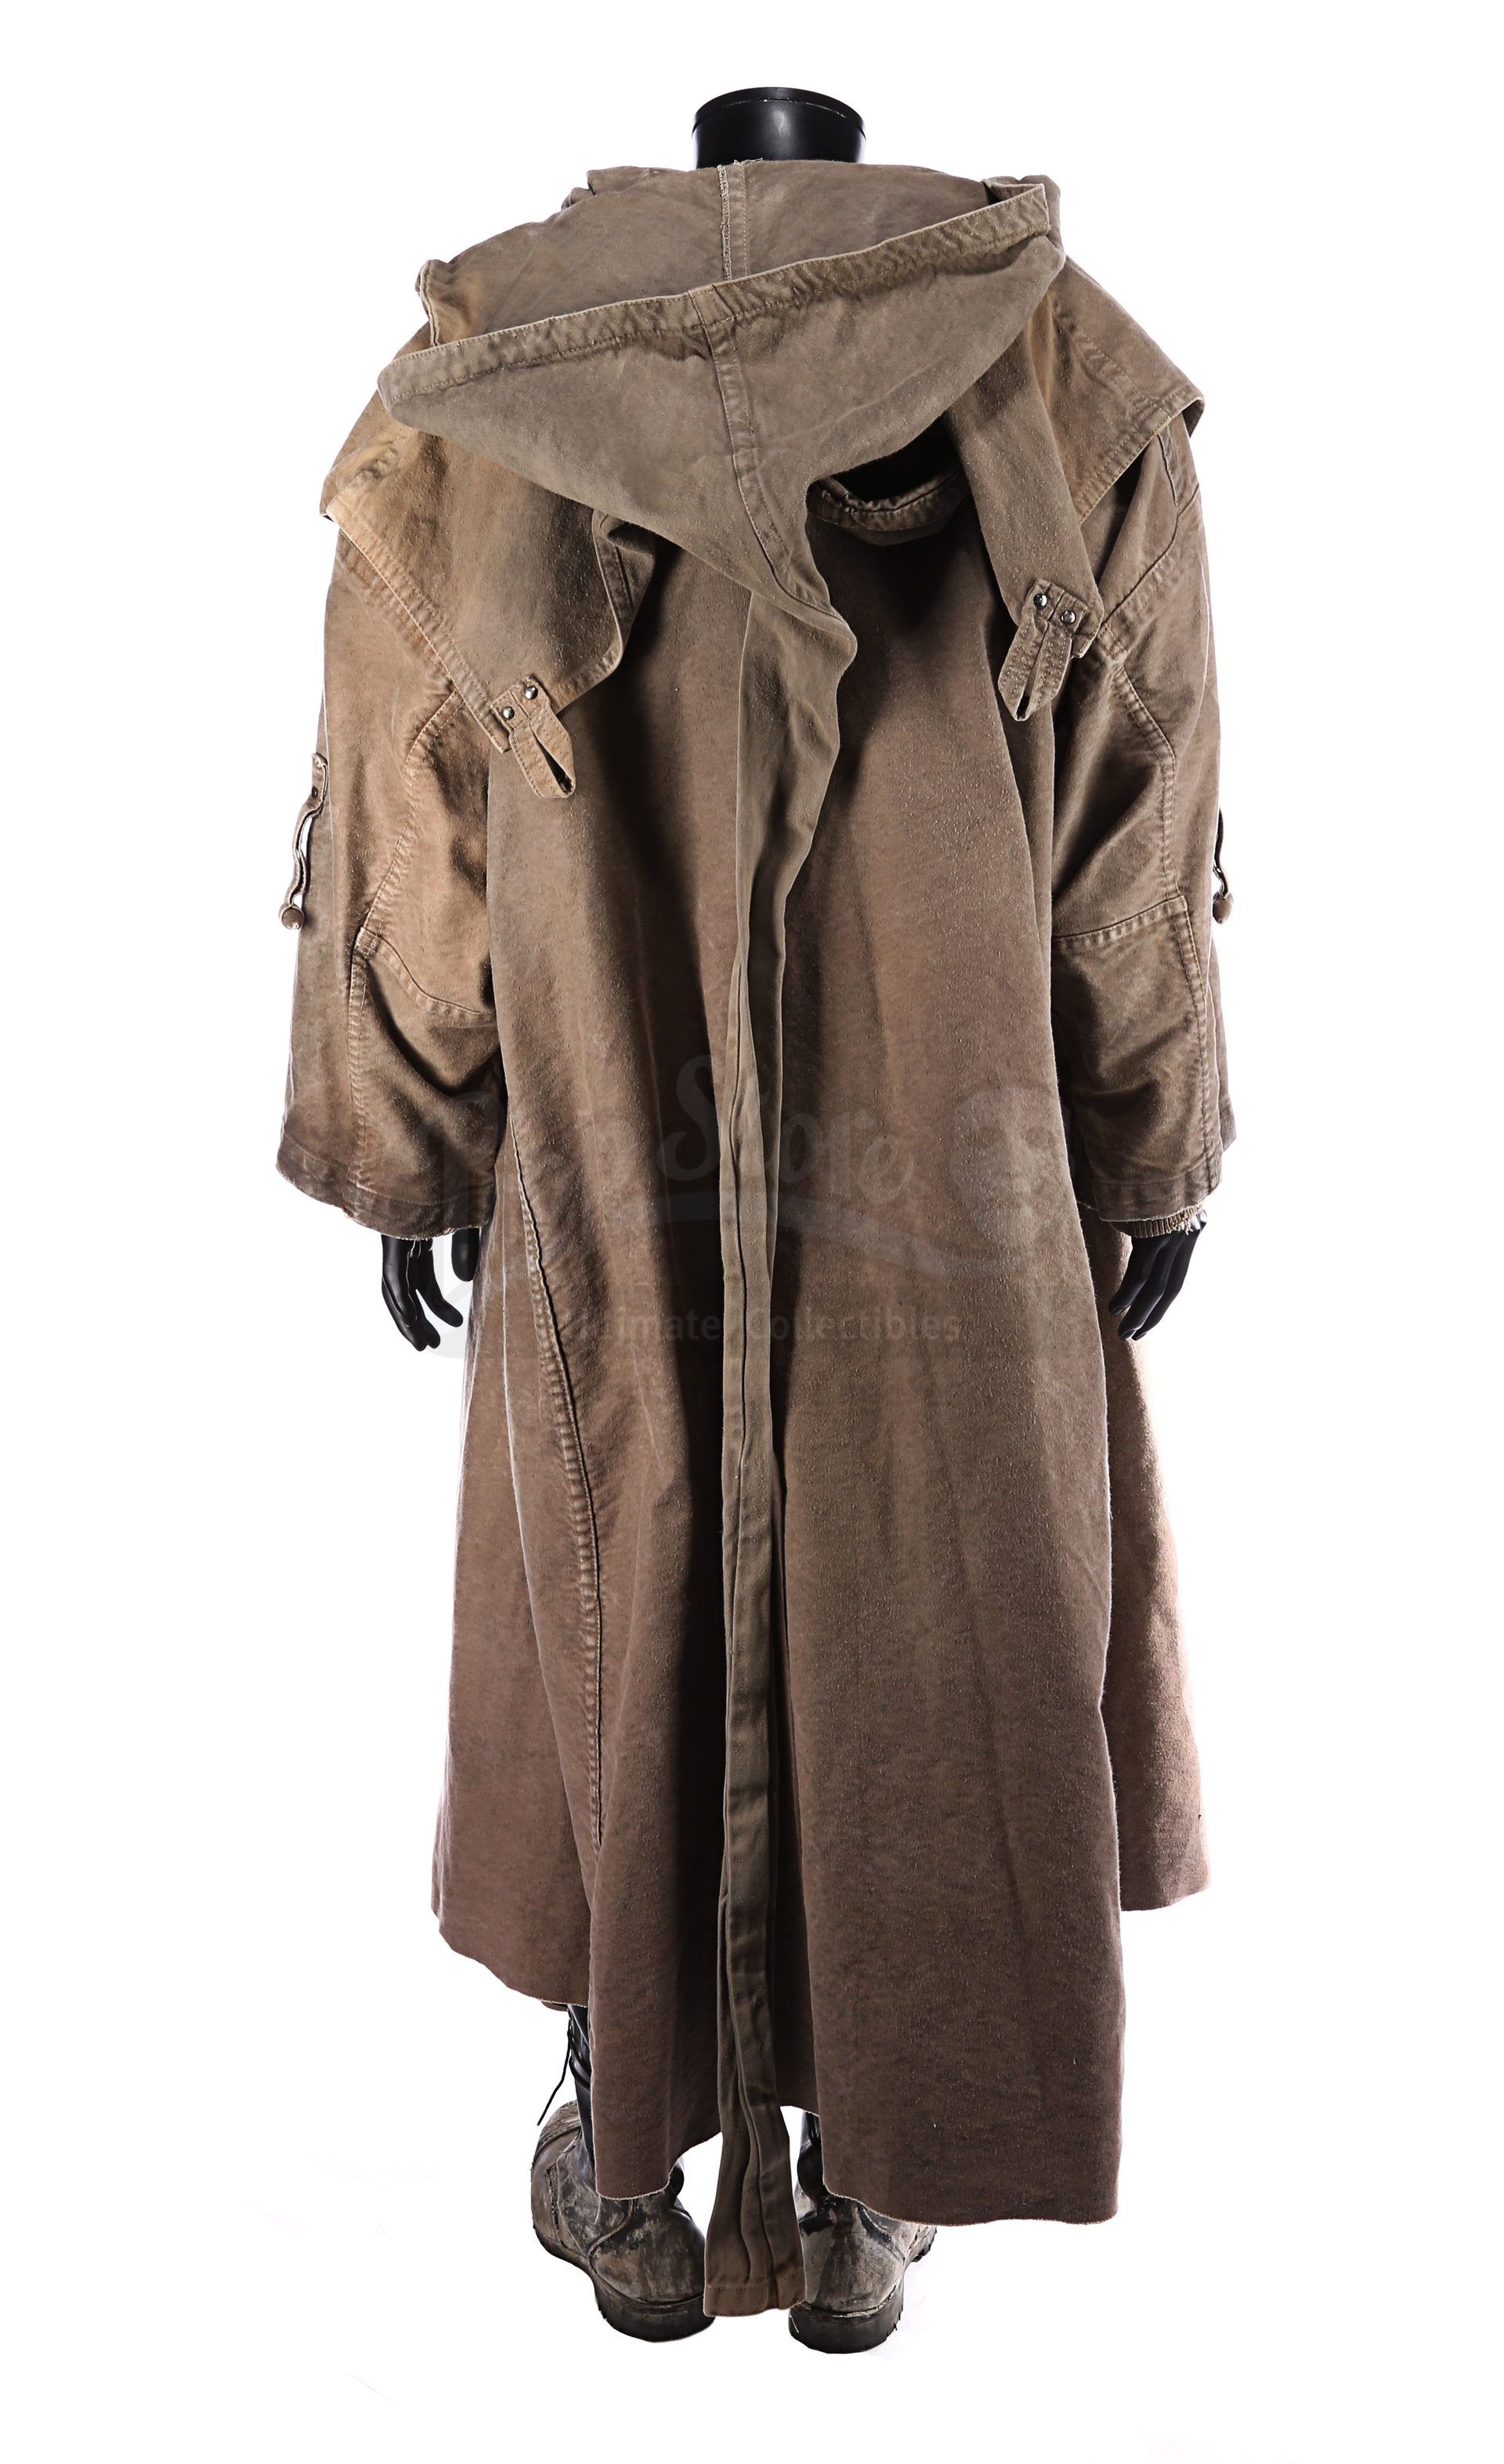 ALIEN3 (1992) - Dillon's (Charles S. Dutton) Complete Costume - Image 3 of 17